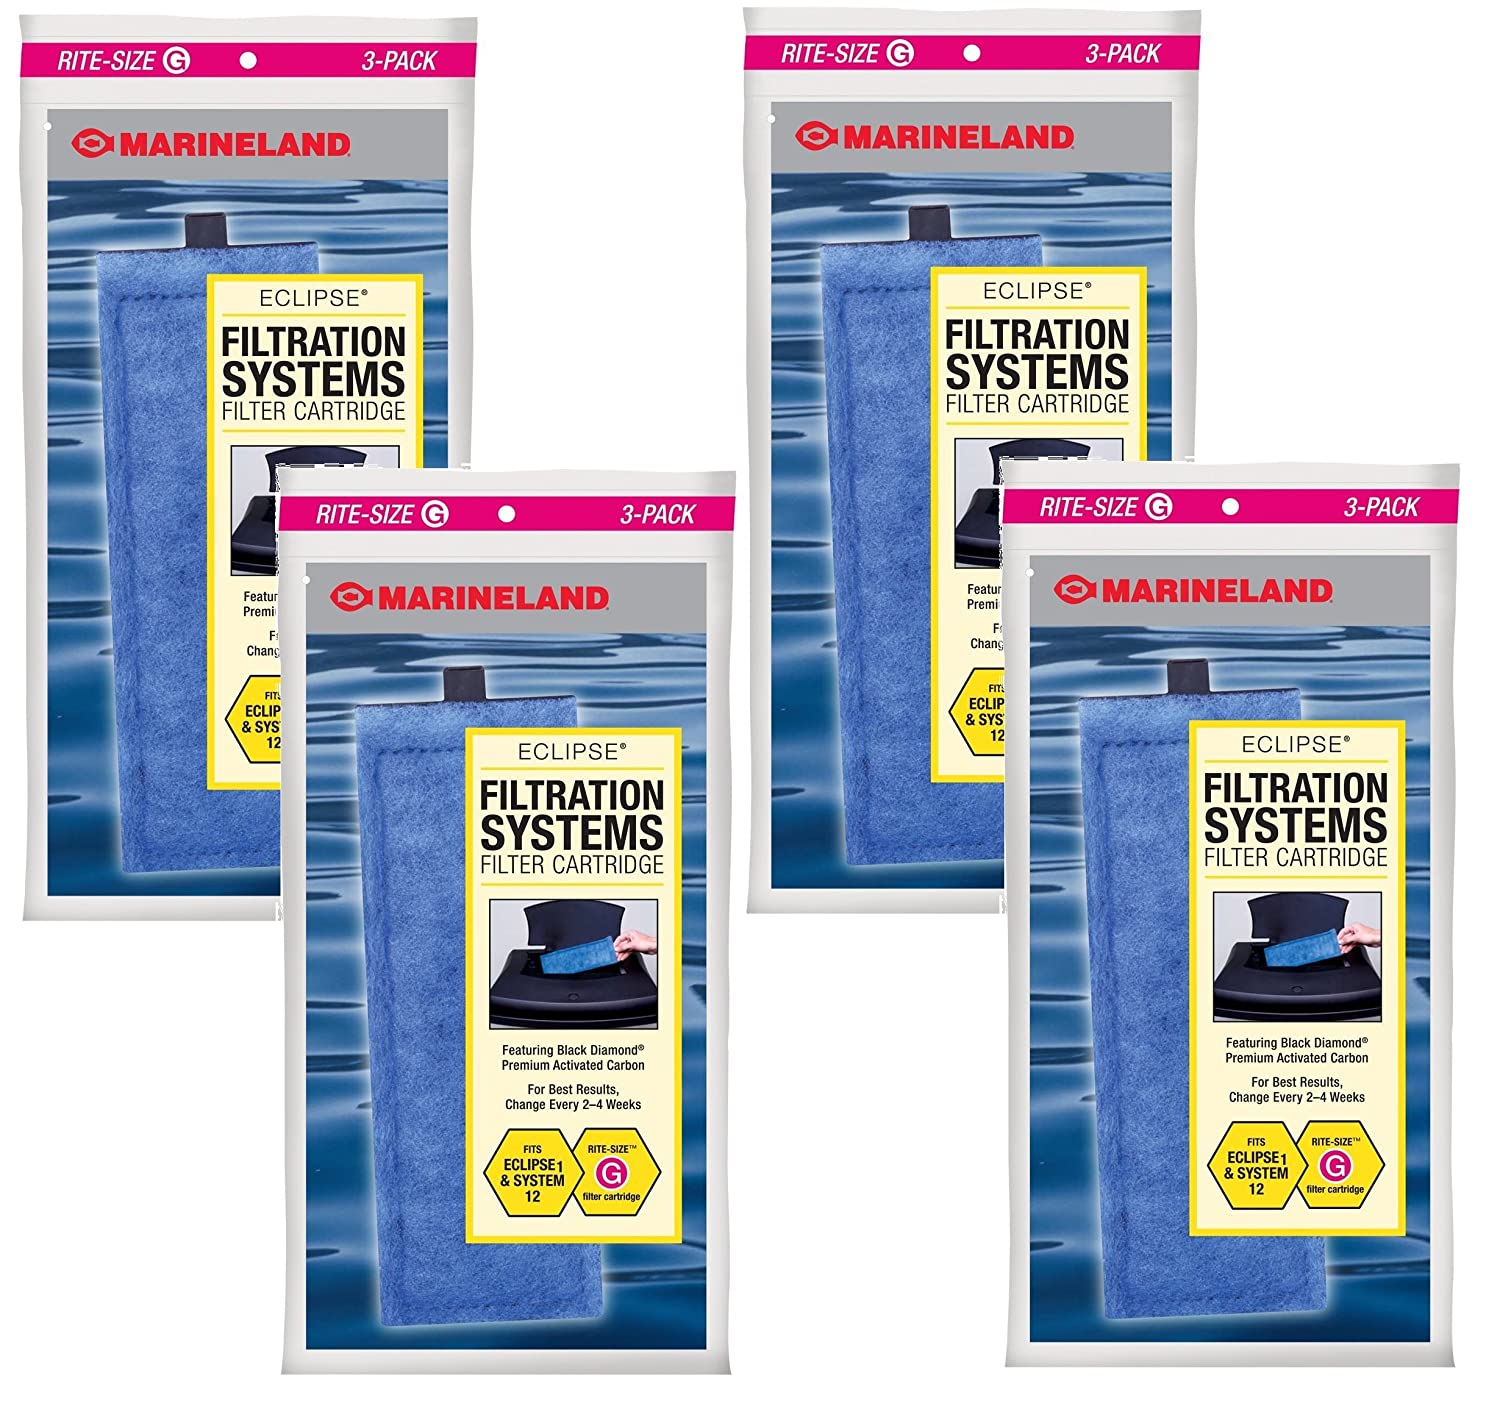 Marineland Rite-Size Cartridges G12 Total Cartridges (4 Packs with 3 per Pack)